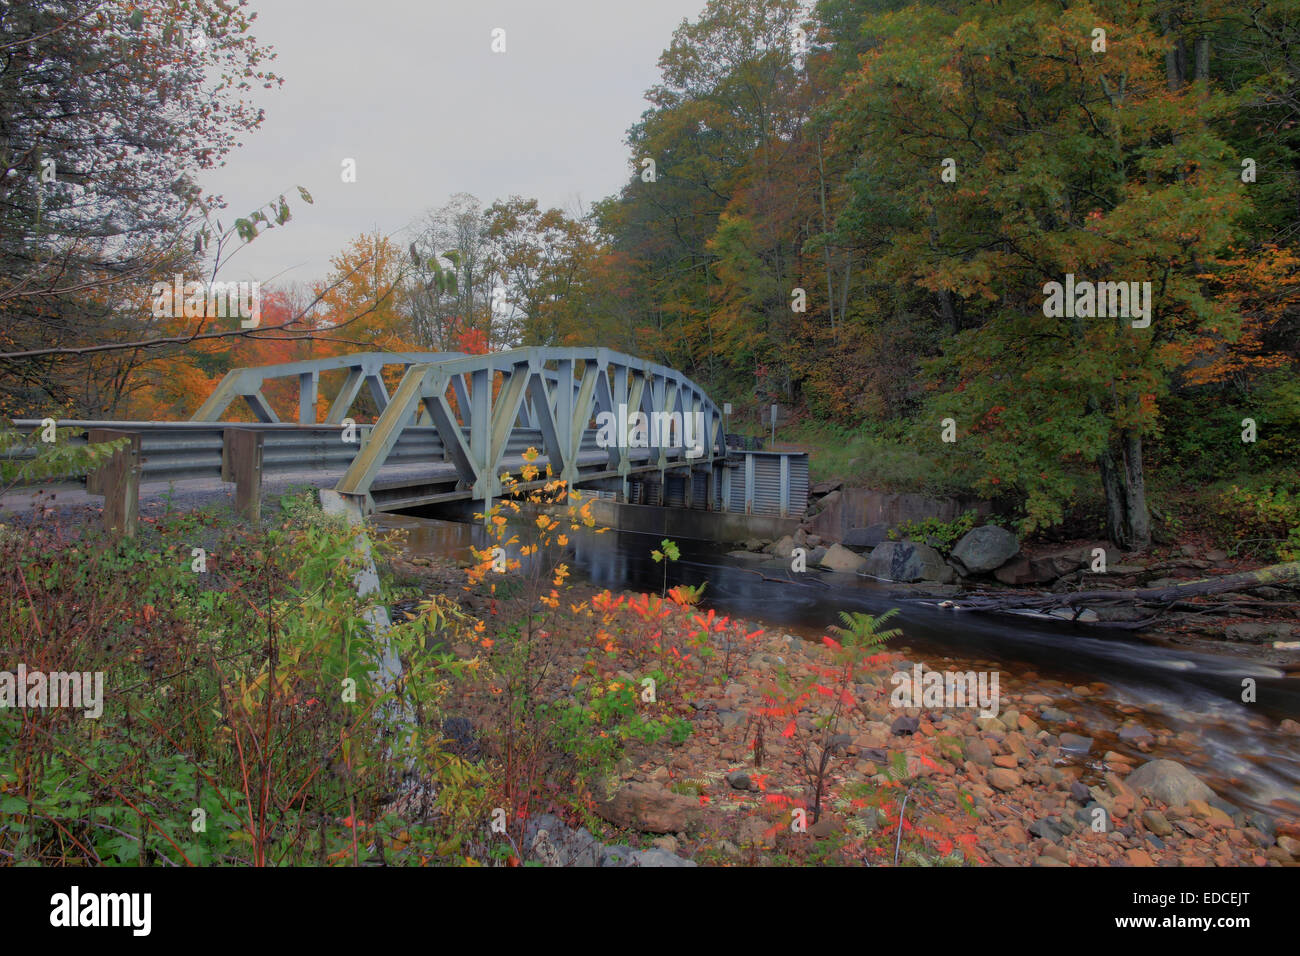 A bridge in rural West Virginia on Red Creek near Dolly Sods. - Stock Image